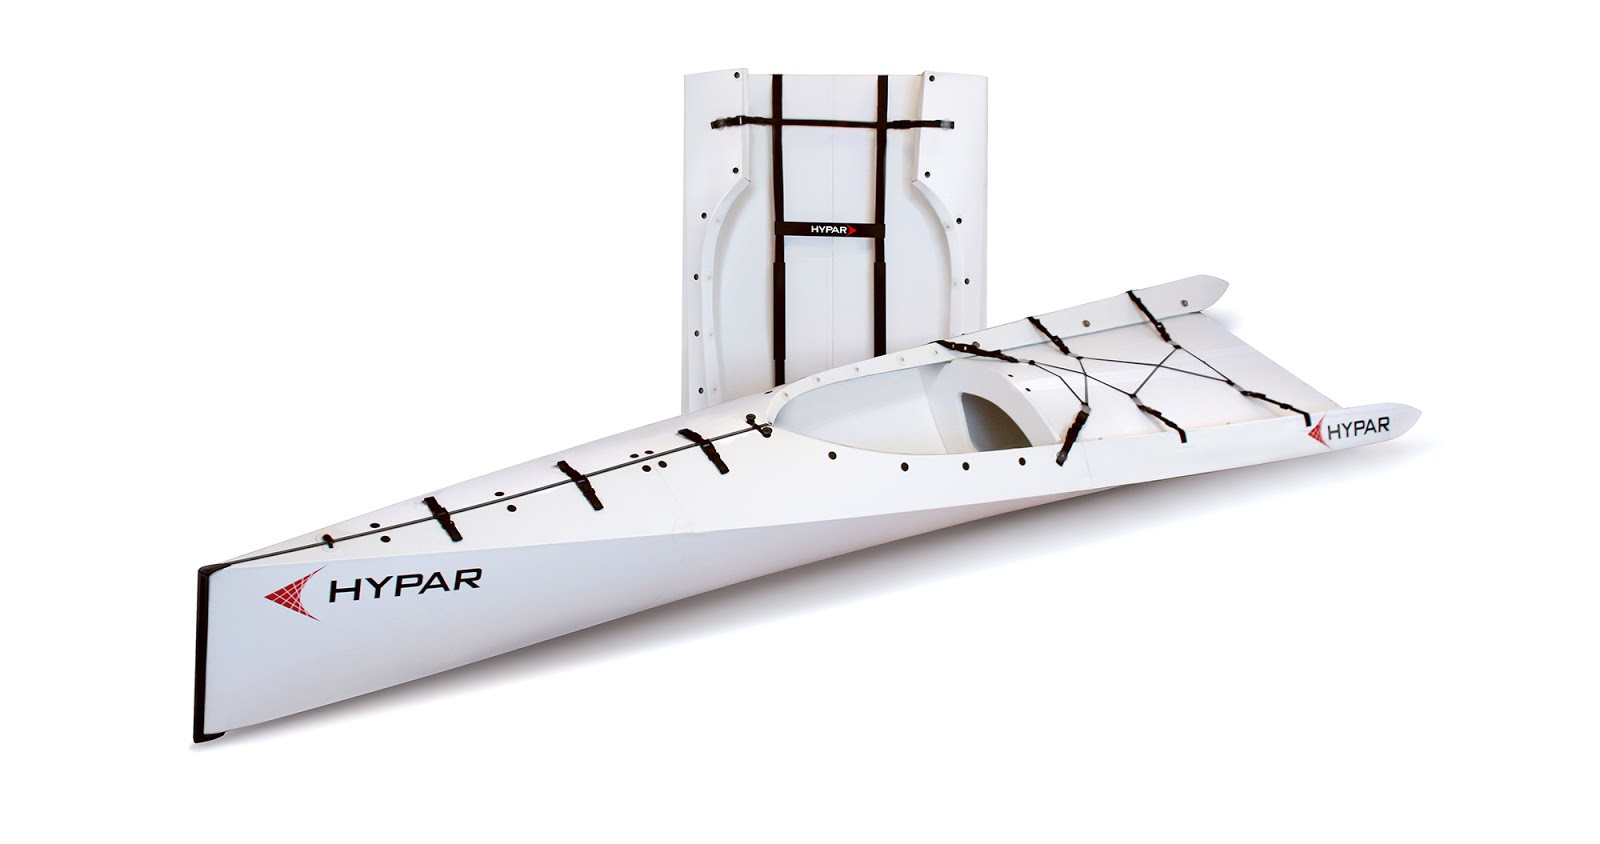 HYPAR Kayak Box